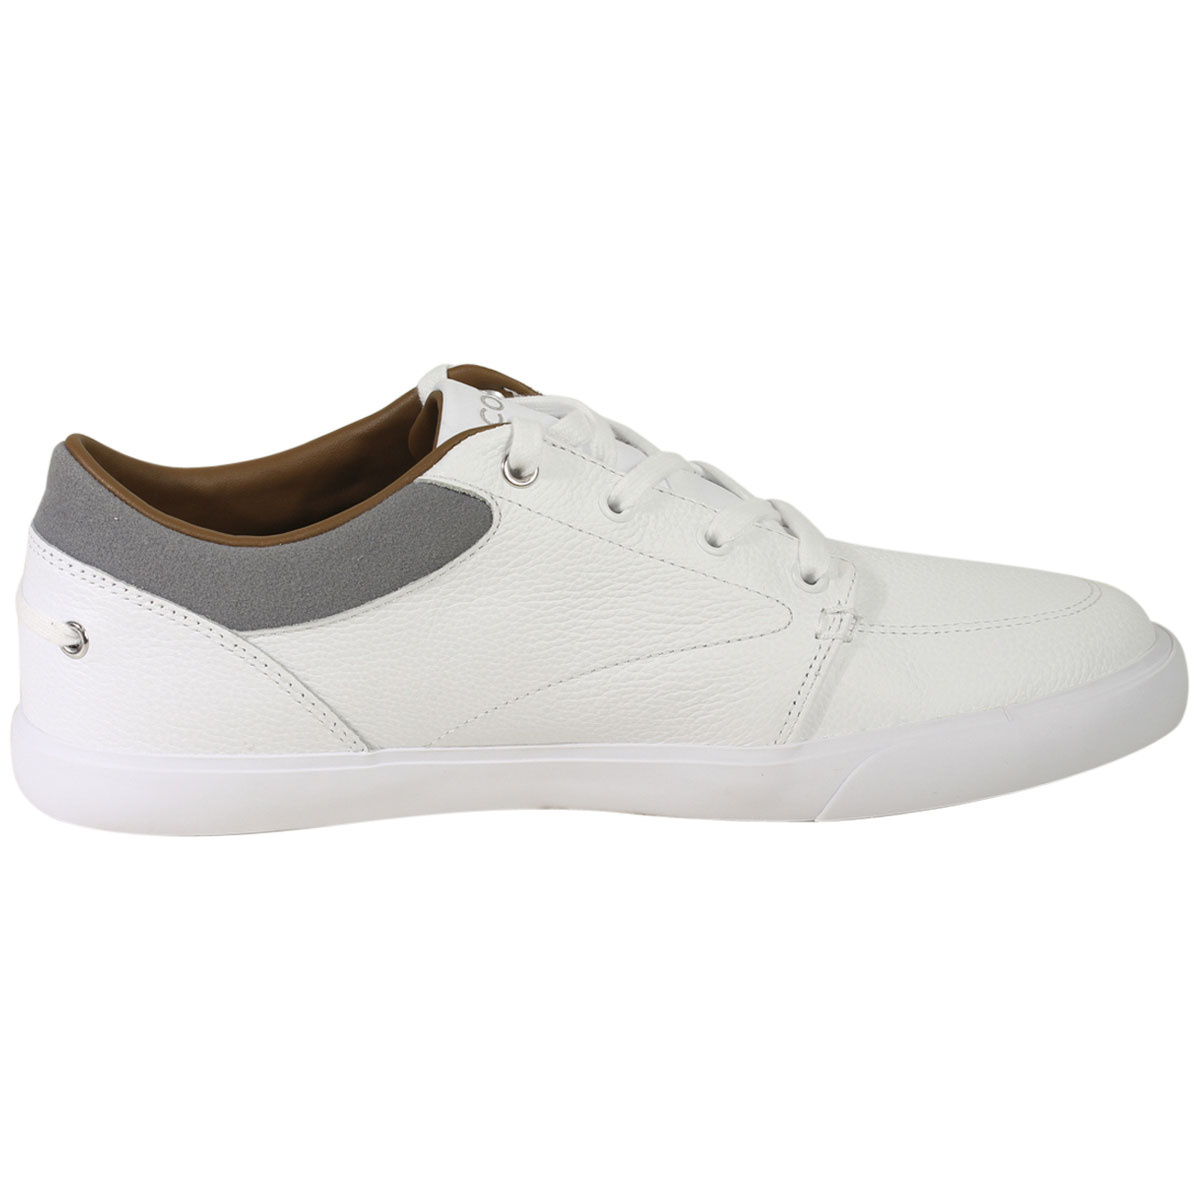 Lacoste-Men-039-s-Bayliss-118-Sneakers-Shoes thumbnail 19